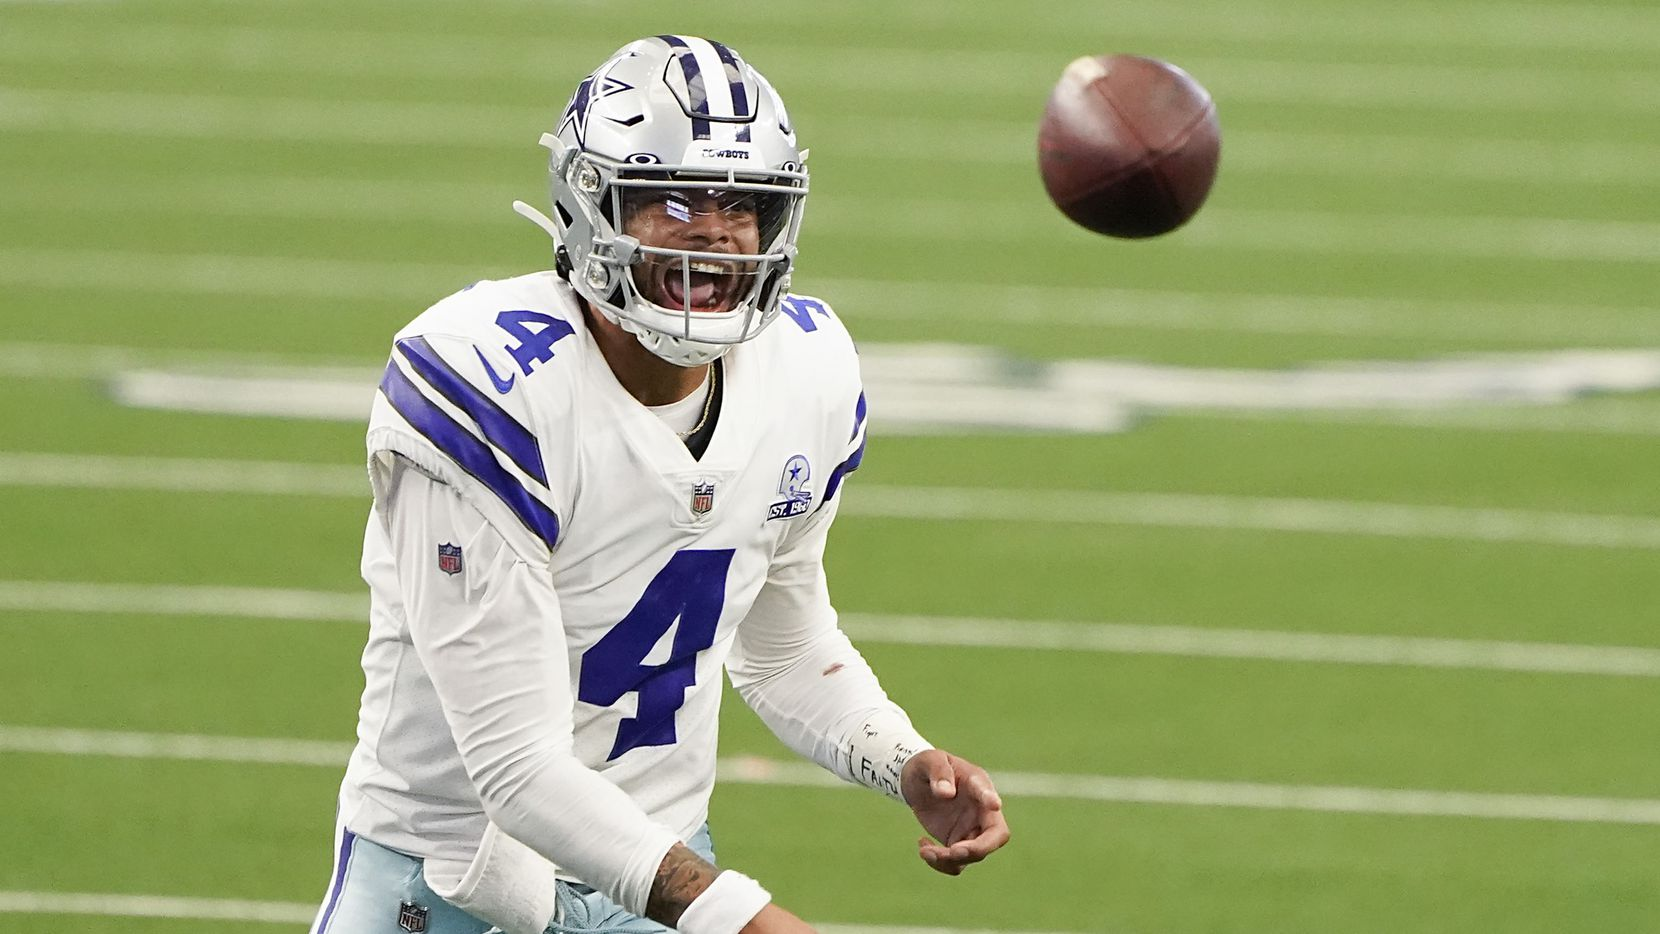 FILE - Cowboys quarterback Dak Prescott throws a pass during the second quarter of a game against the Falcons at AT&T Stadium on Sunday, Sept. 20, 2020, in Arlington.